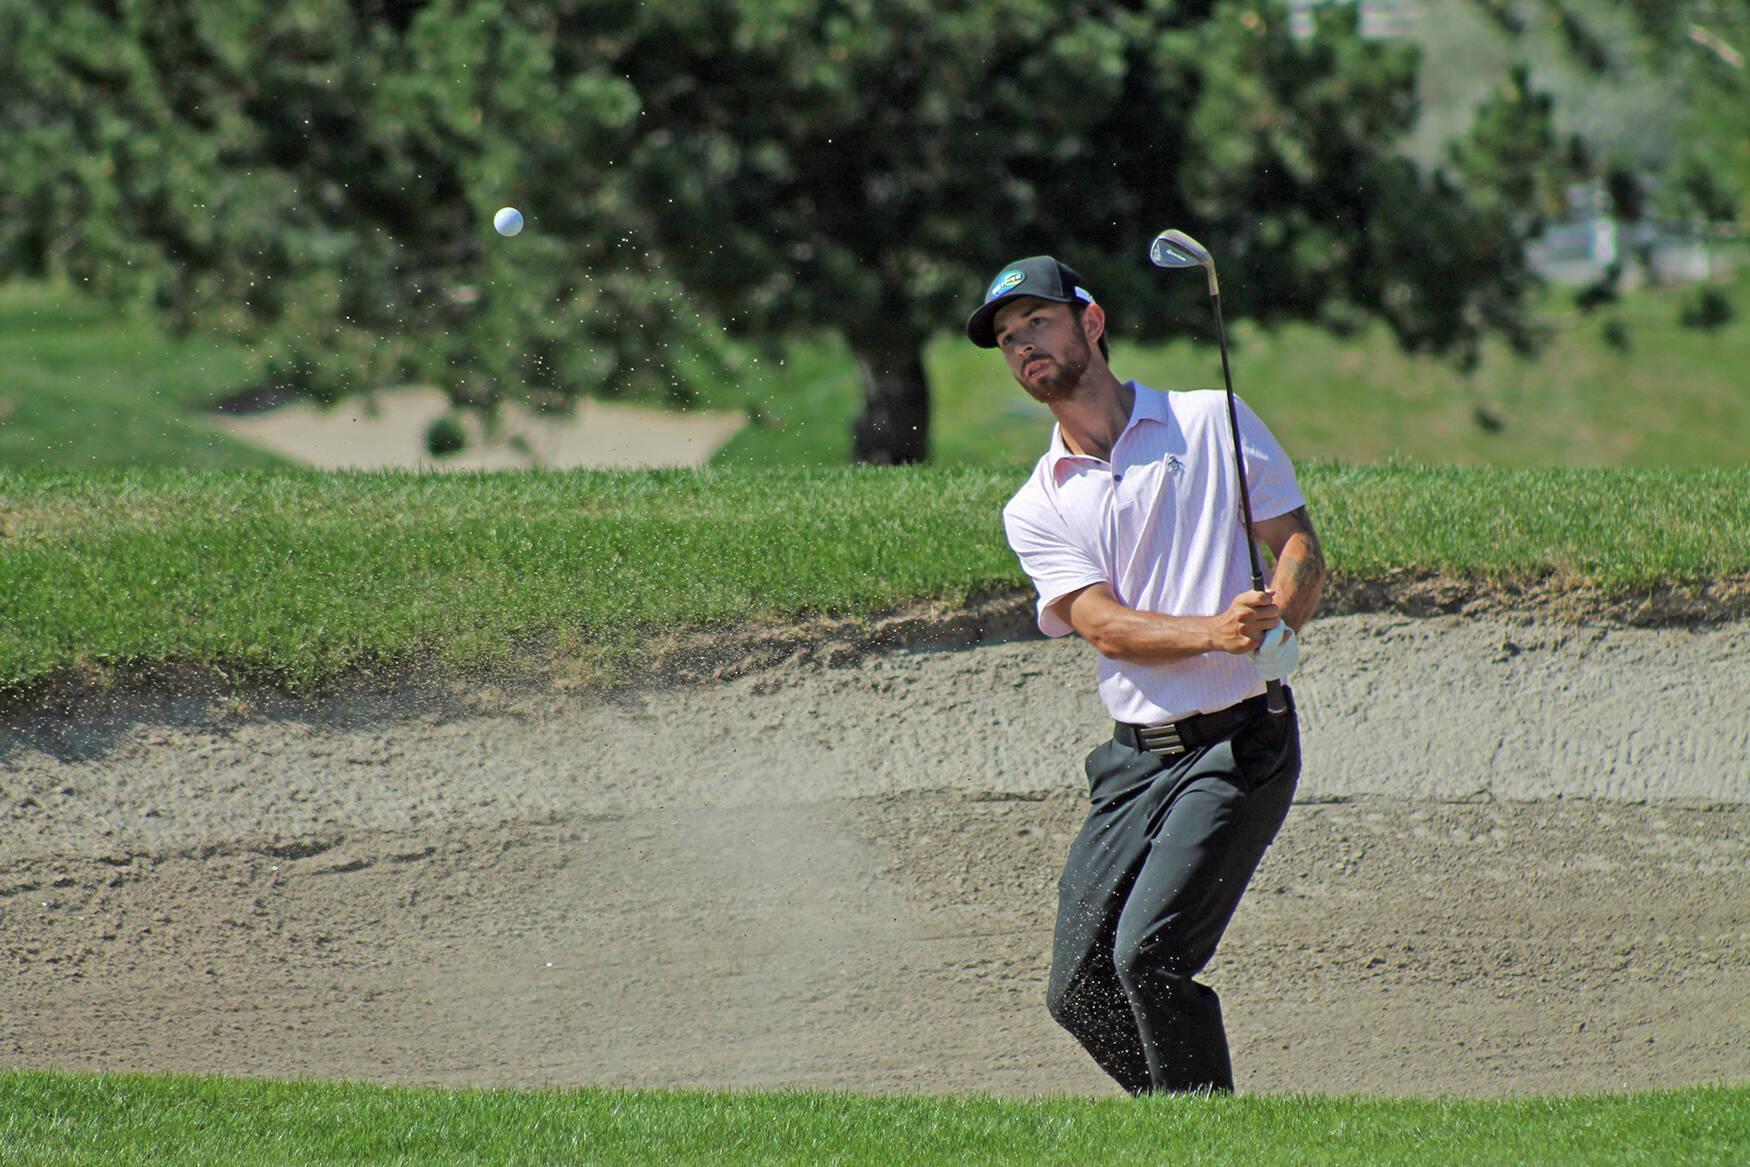 Chilliwack's Jake Scarrow hits out of a bunker during the PGA of BC Championship tournament, played Aug. 24 at the Rivershore Golf Links in Kamloops. (PGA of BC photo)